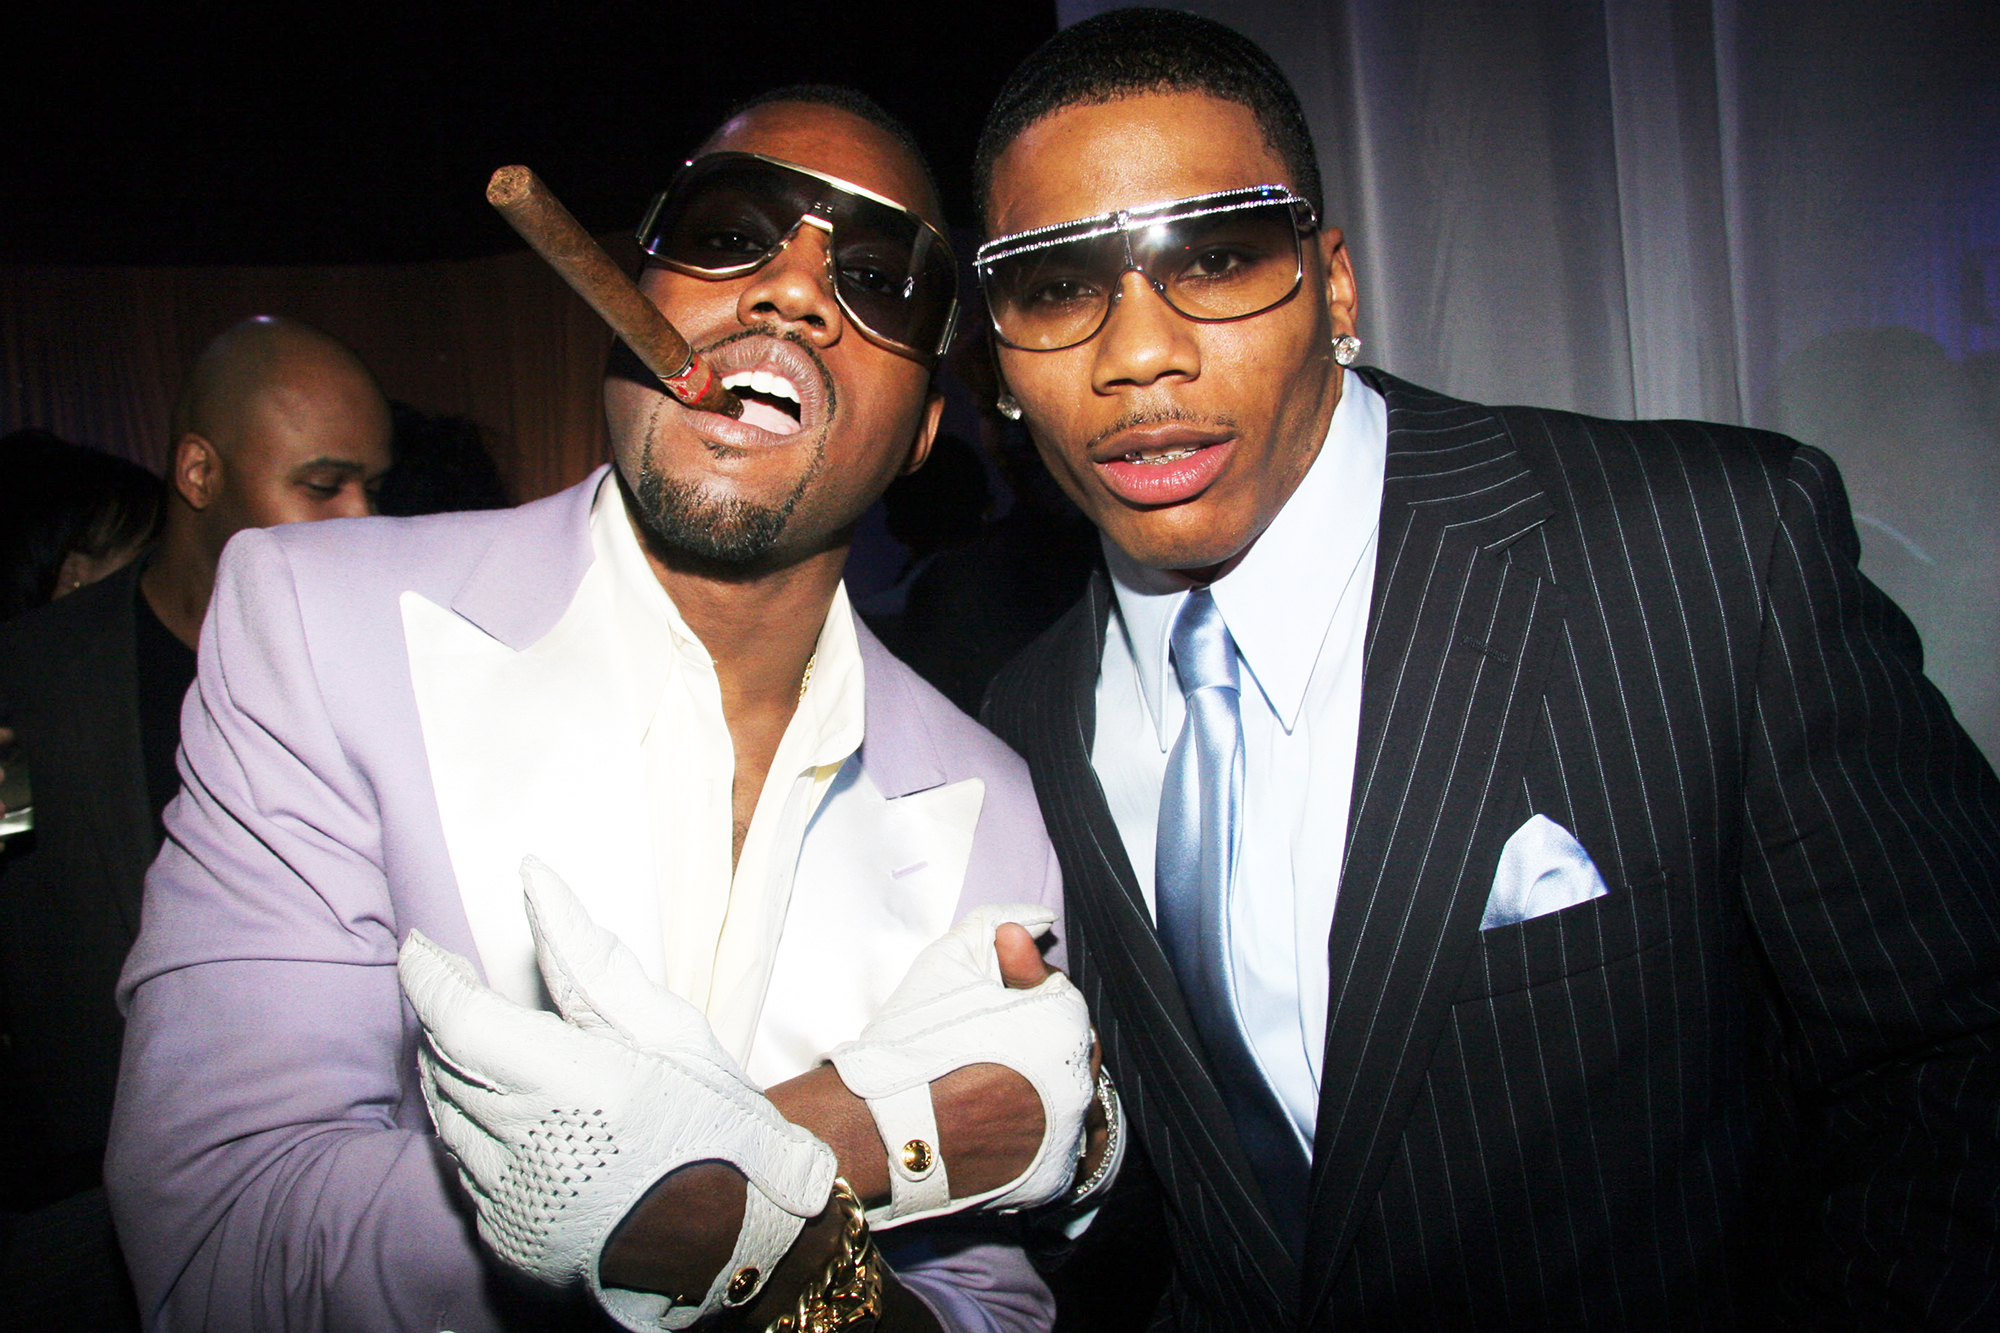 Kanye West and Nelly during Kanye West's Grammy afterparty in Hollywood, Calif., on Feb. 08, 2006.